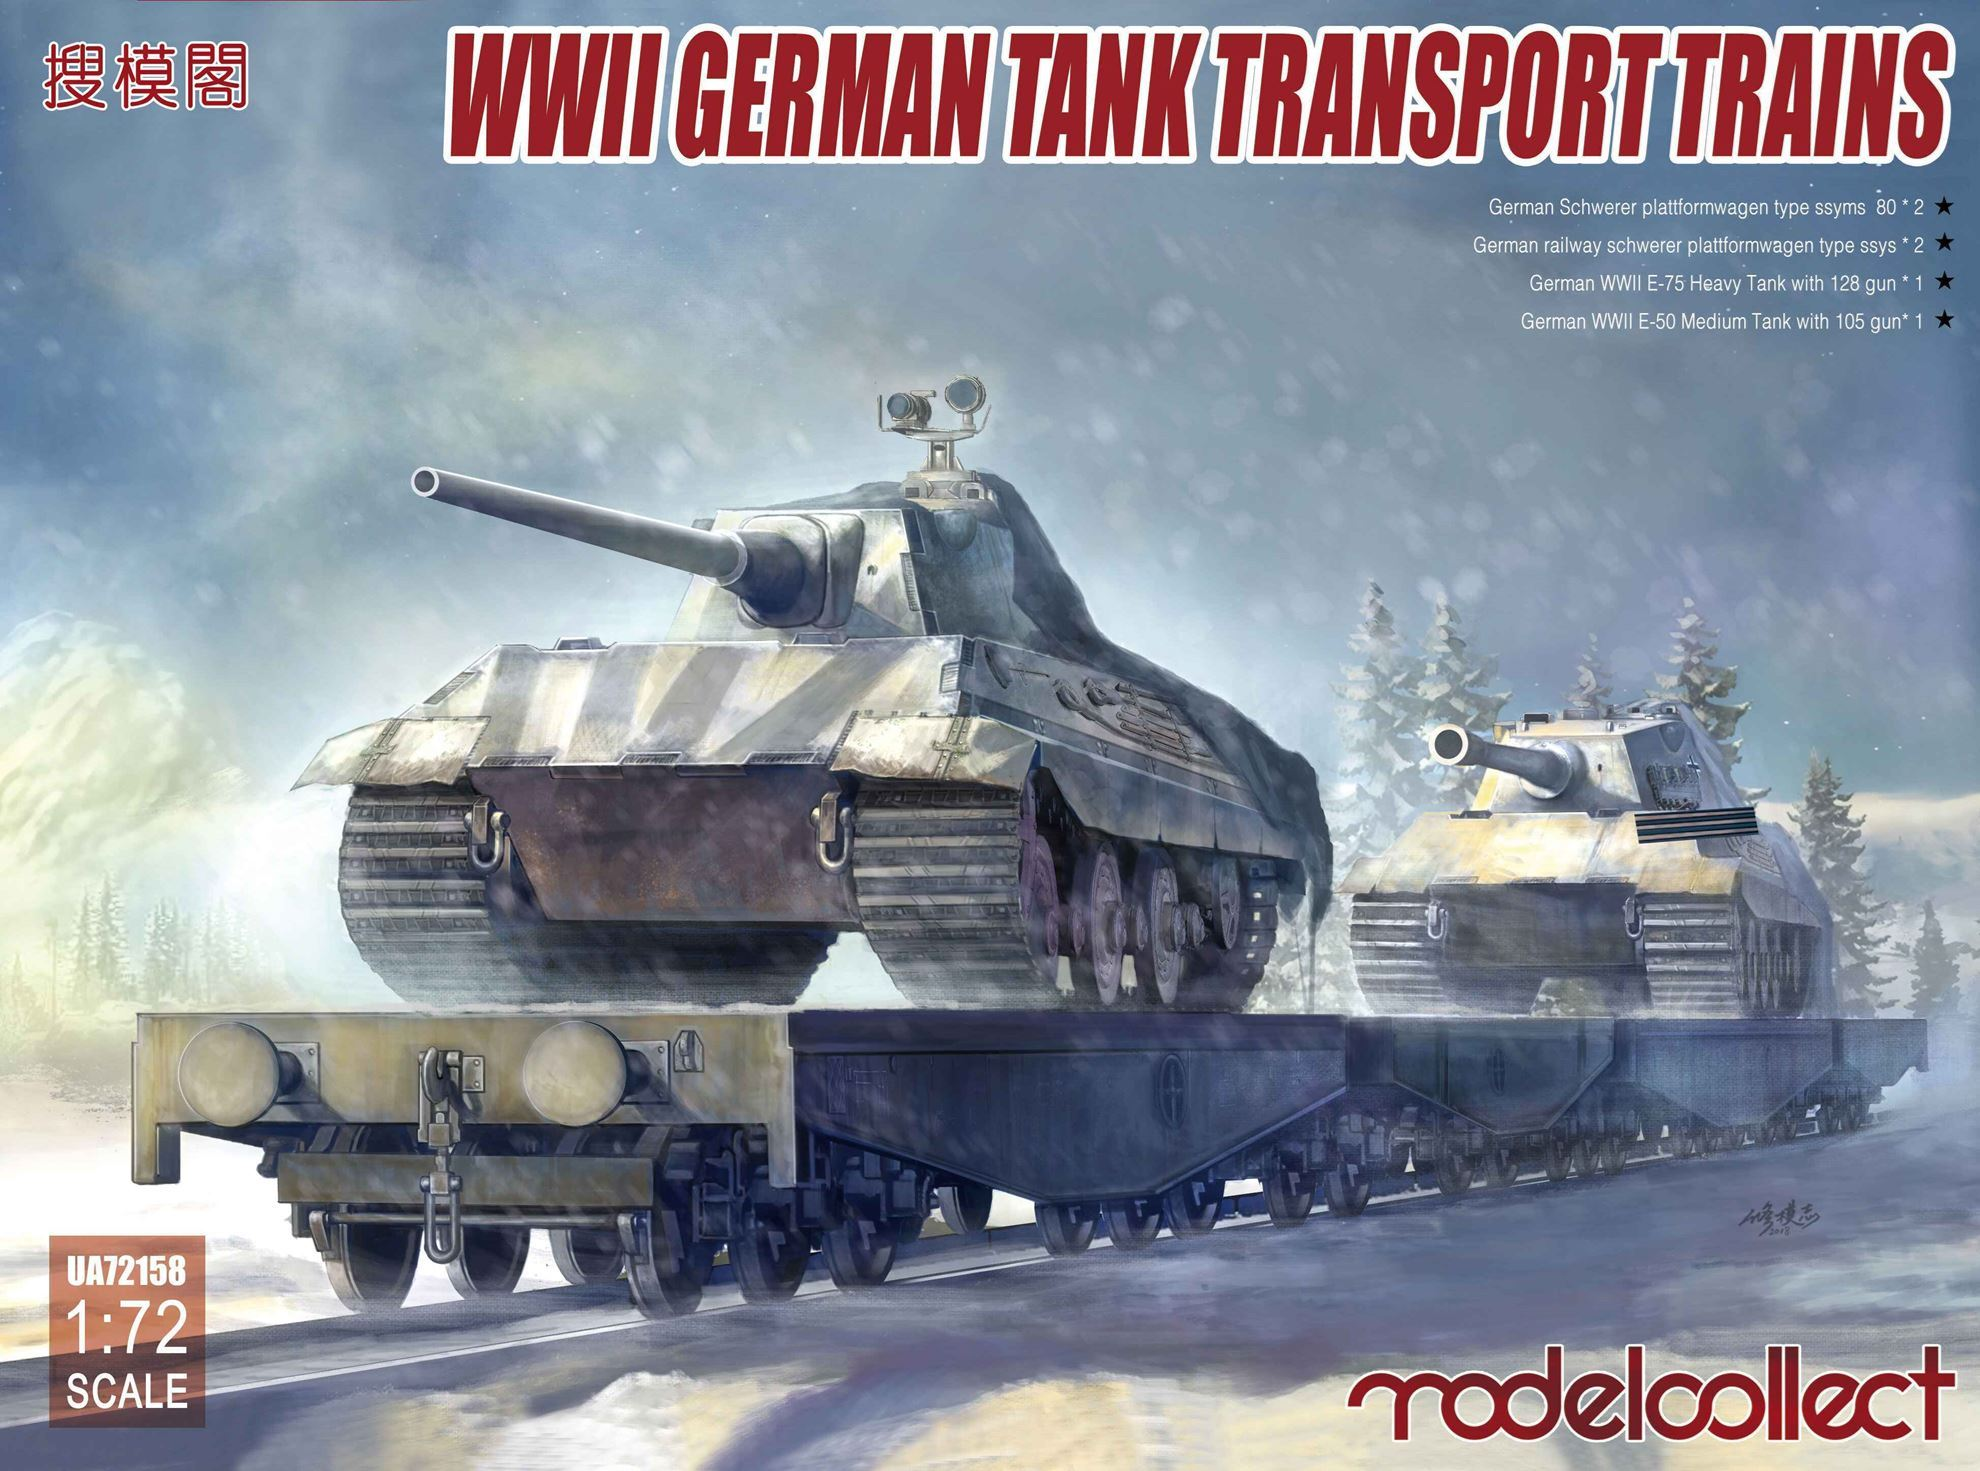 ModelCollect WWII German tank transport trains